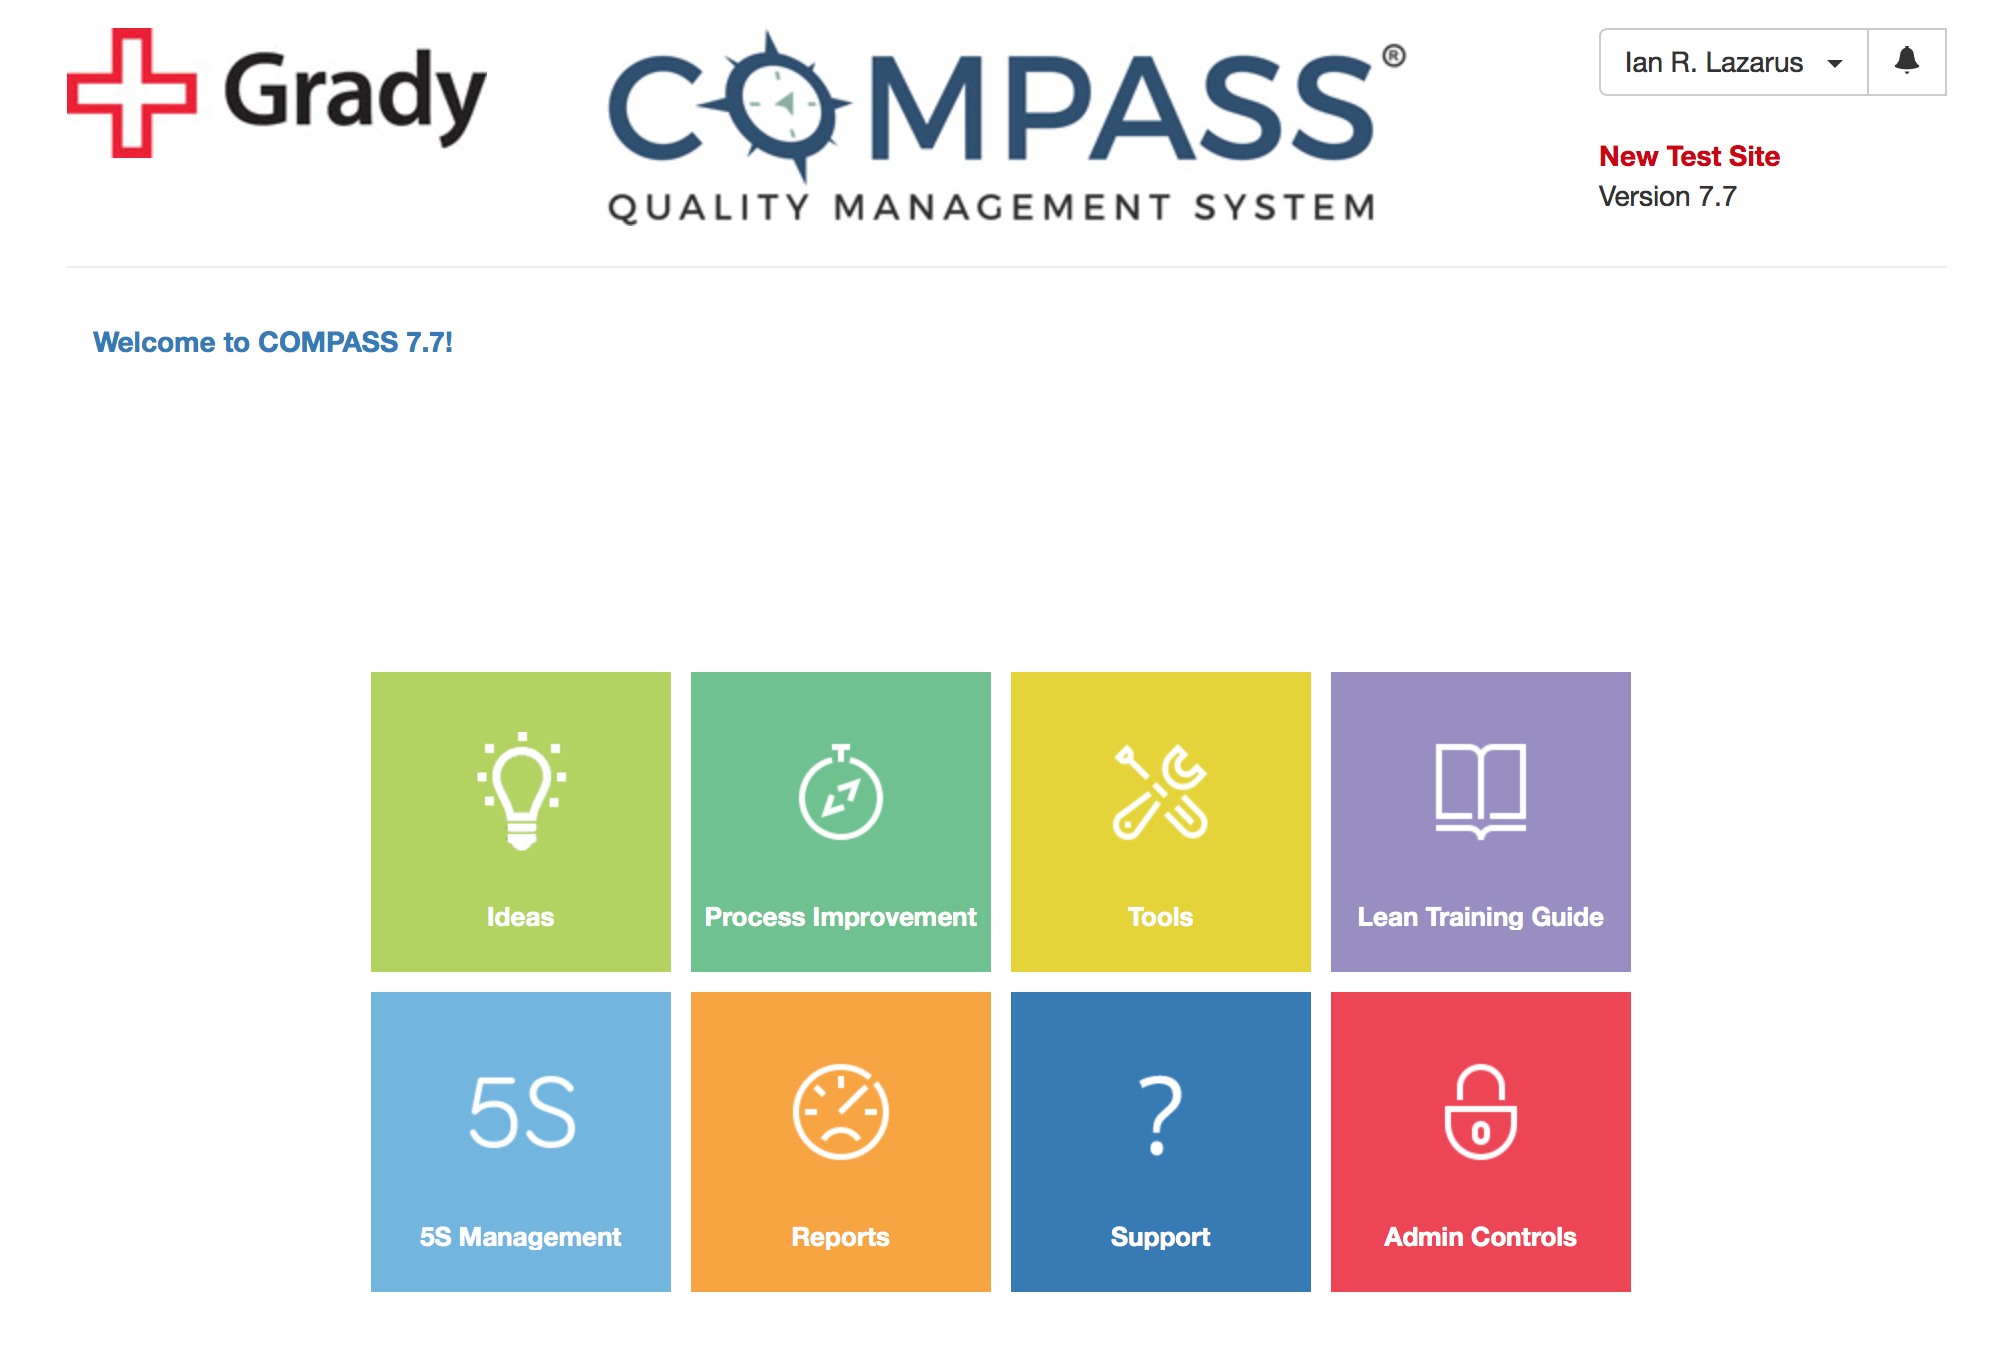 COMPASS® Quality Management System Demo - COMPASS Main Menu